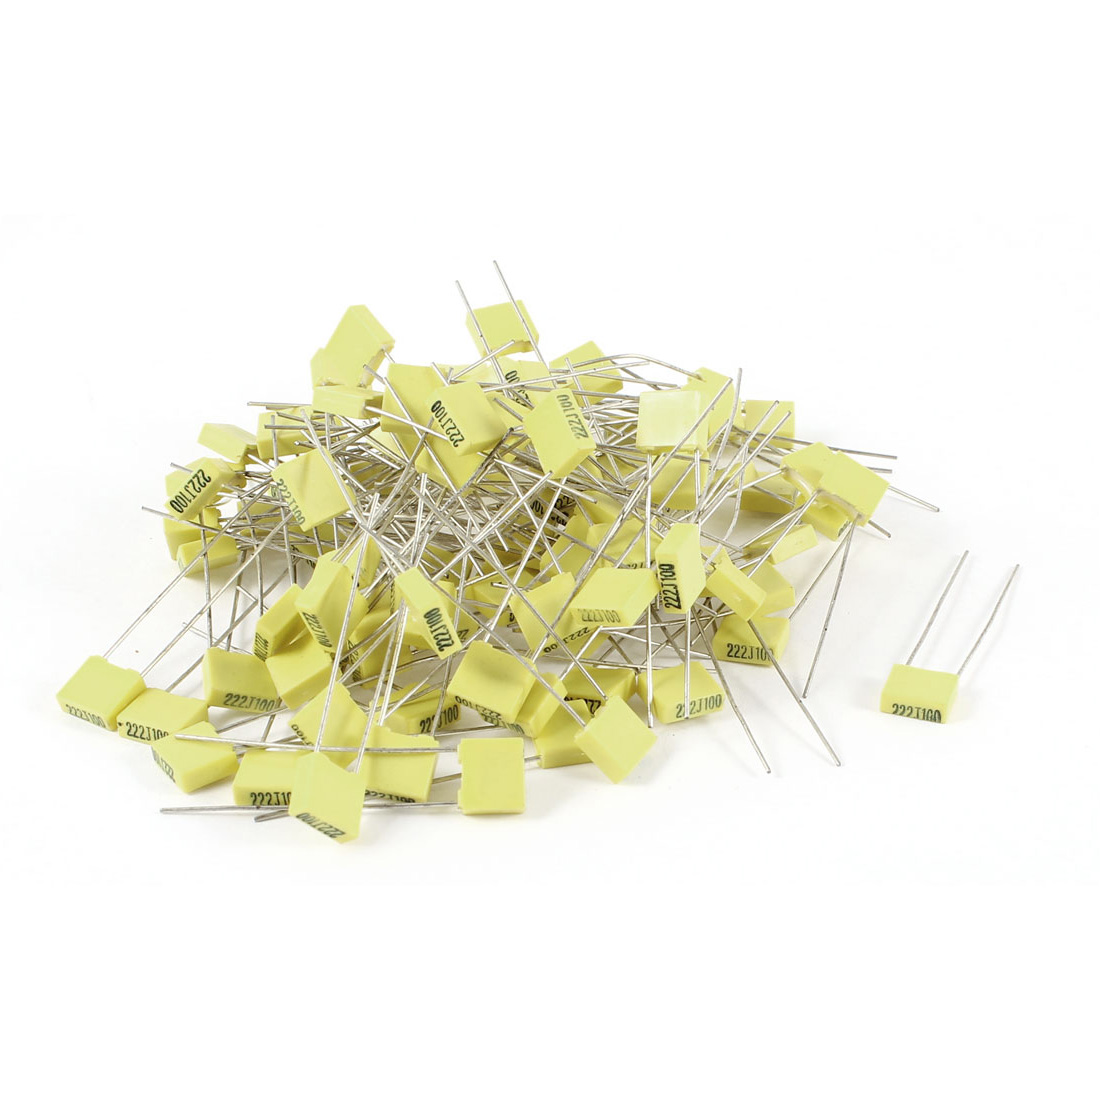 100 Pieces 100V 2.2NF Metal Radial Lead Box Type Film Correction Capacitor Yellow